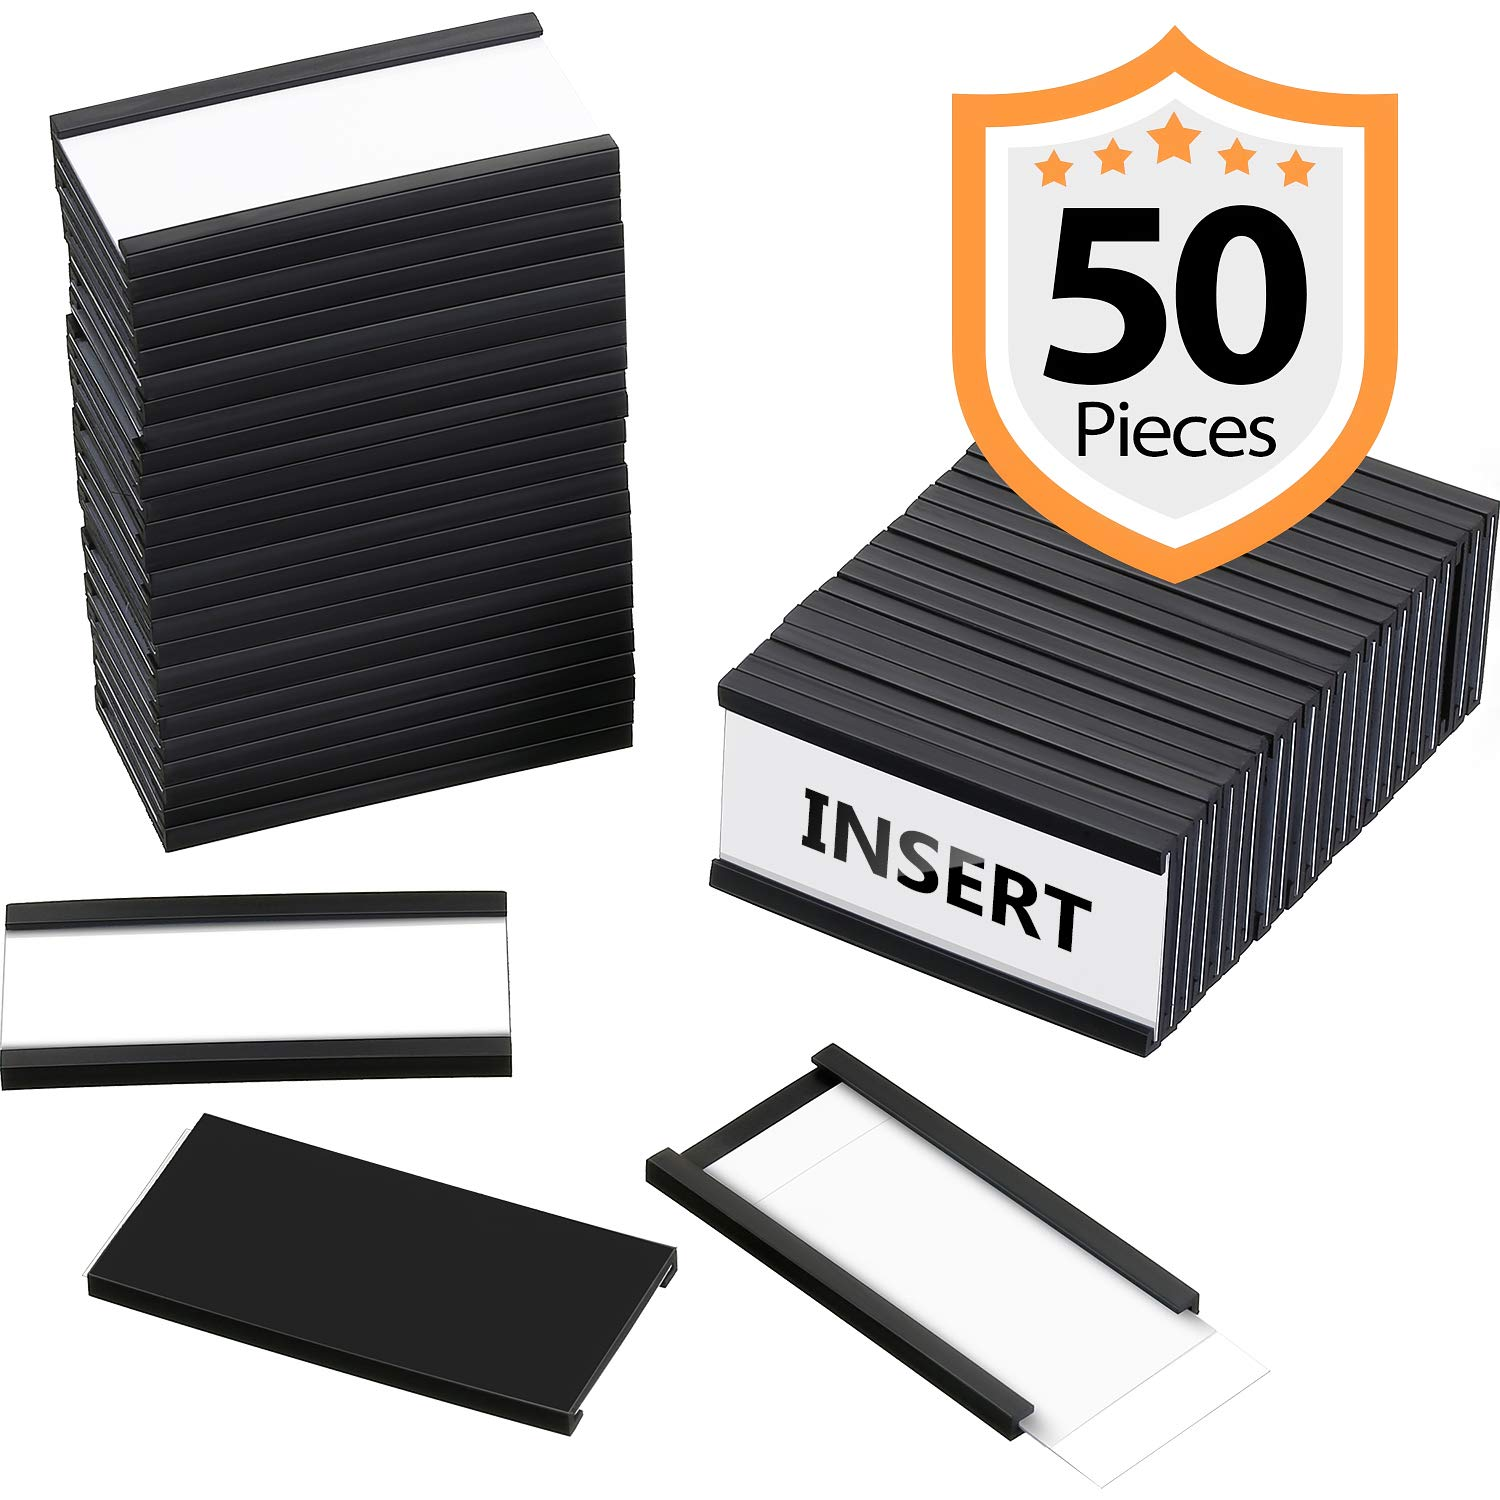 50 Pieces Magnetic Data Card Holders Magnetic Labels with 50 Magnets and 50 Cards for Metal Shelving, Metal Racks, Metal Mailboxes (1 x 2 Inch)